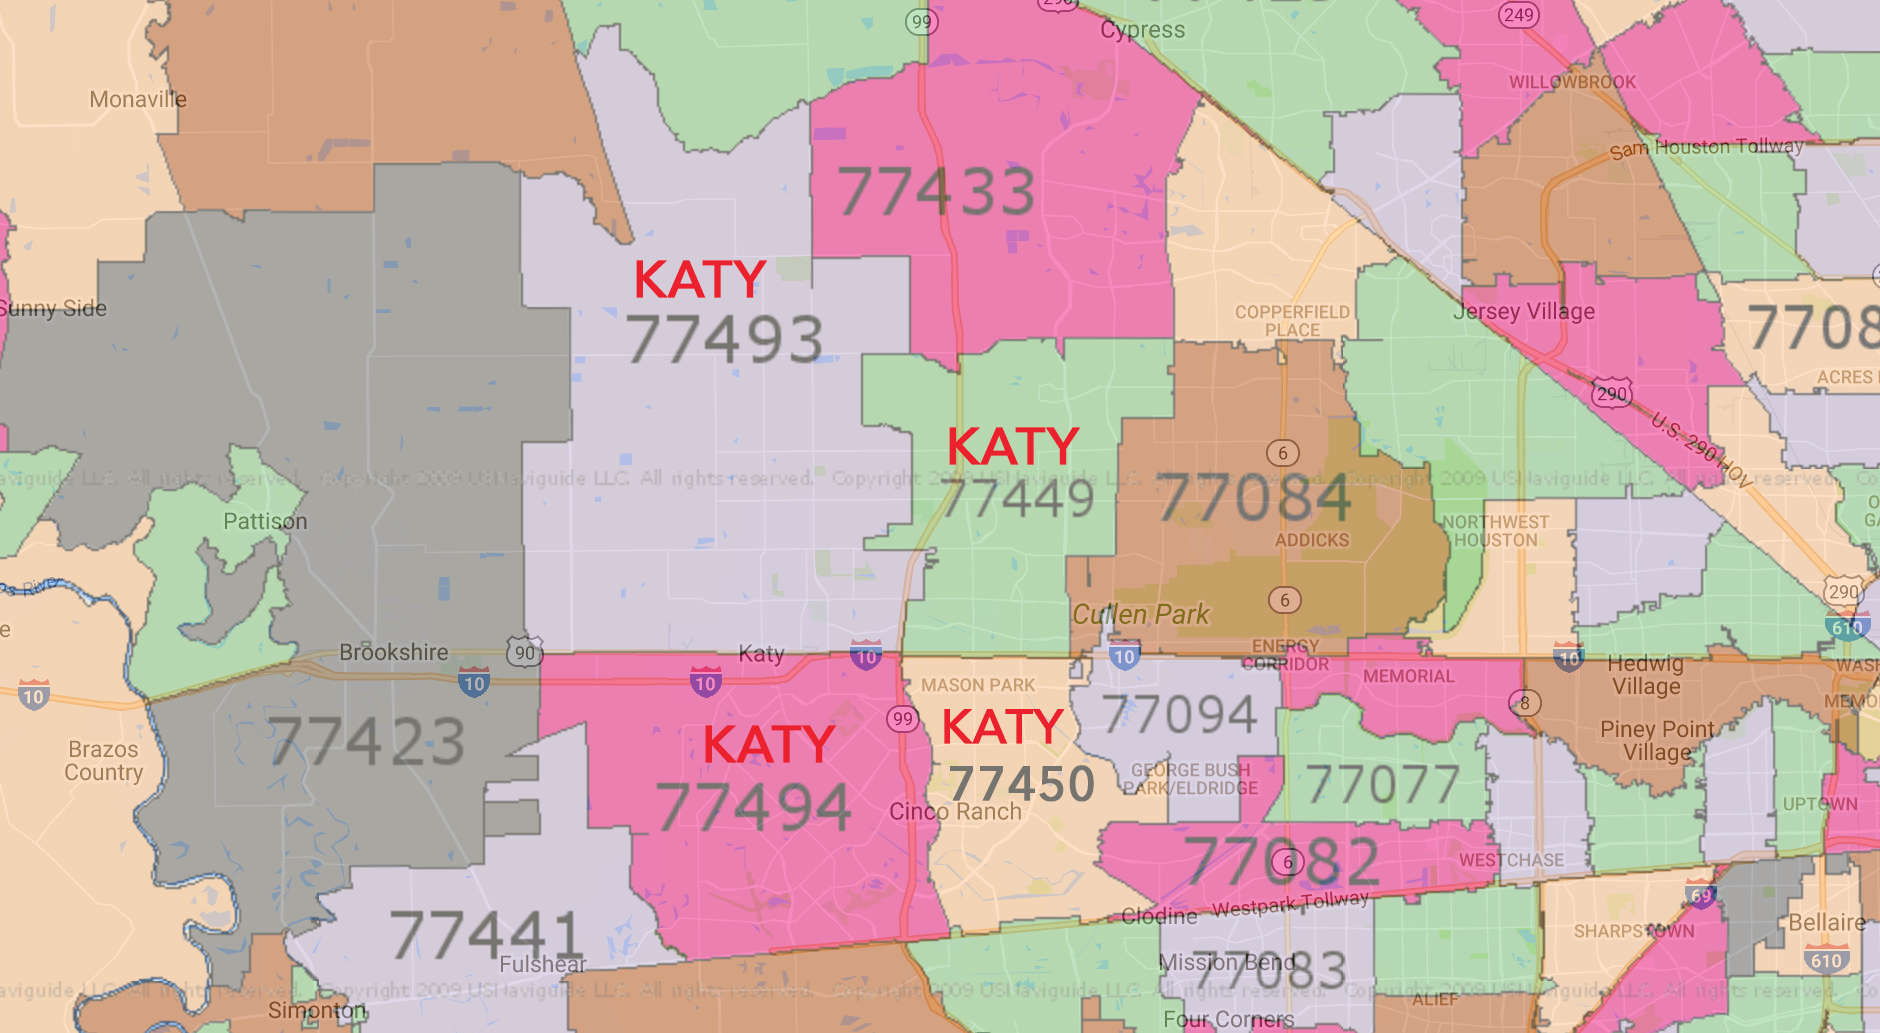 Demographics By Zip Code Map.A Look At Katy Texas Demographics By Zip Code